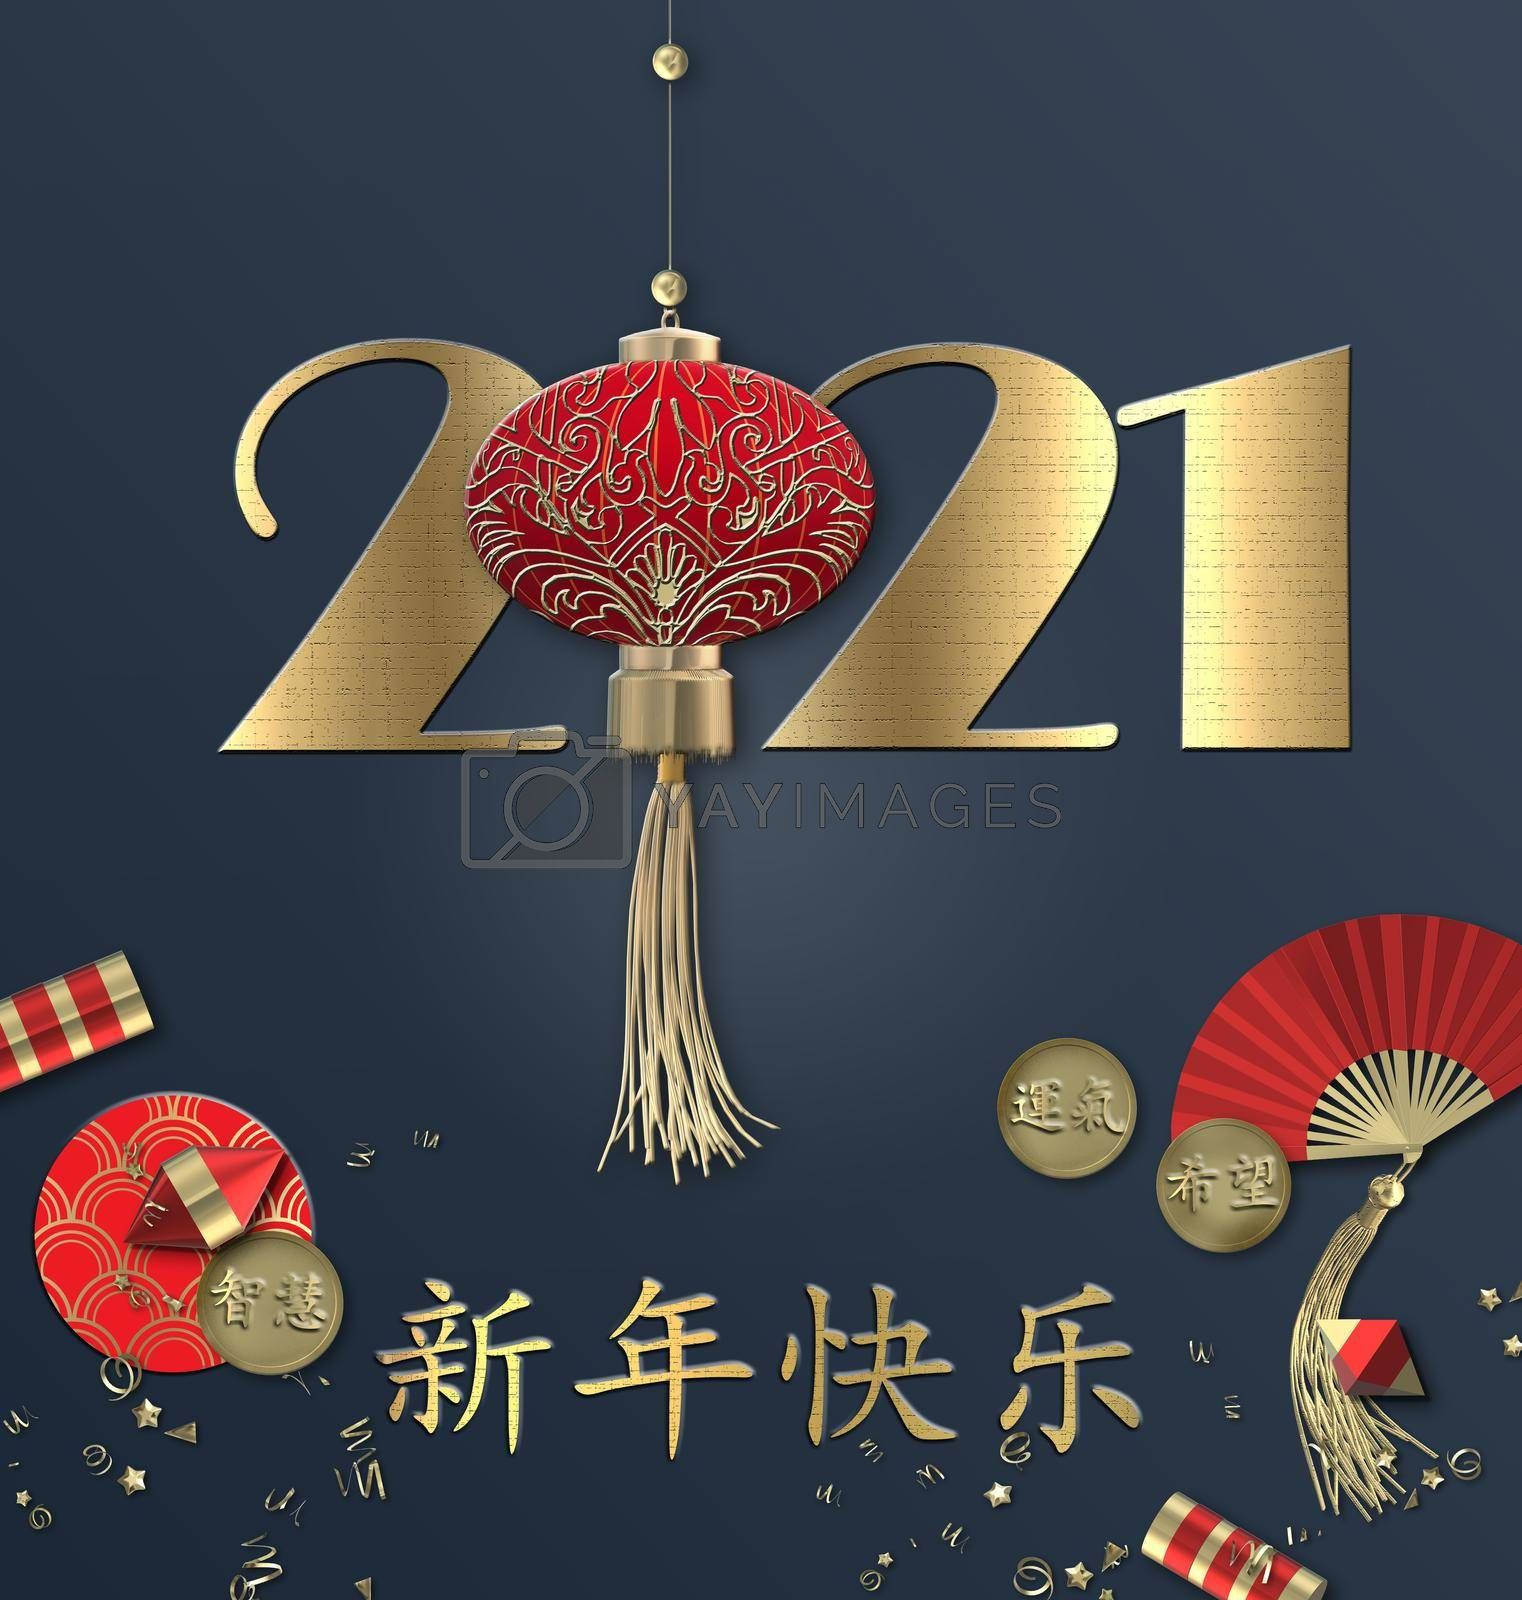 Chinese 2021 New Year on blue background. Gold text Happy Chinese new year, digit 2021, red fan, red gold lantern. Design for greetings, oriental new year card. 3D illustration